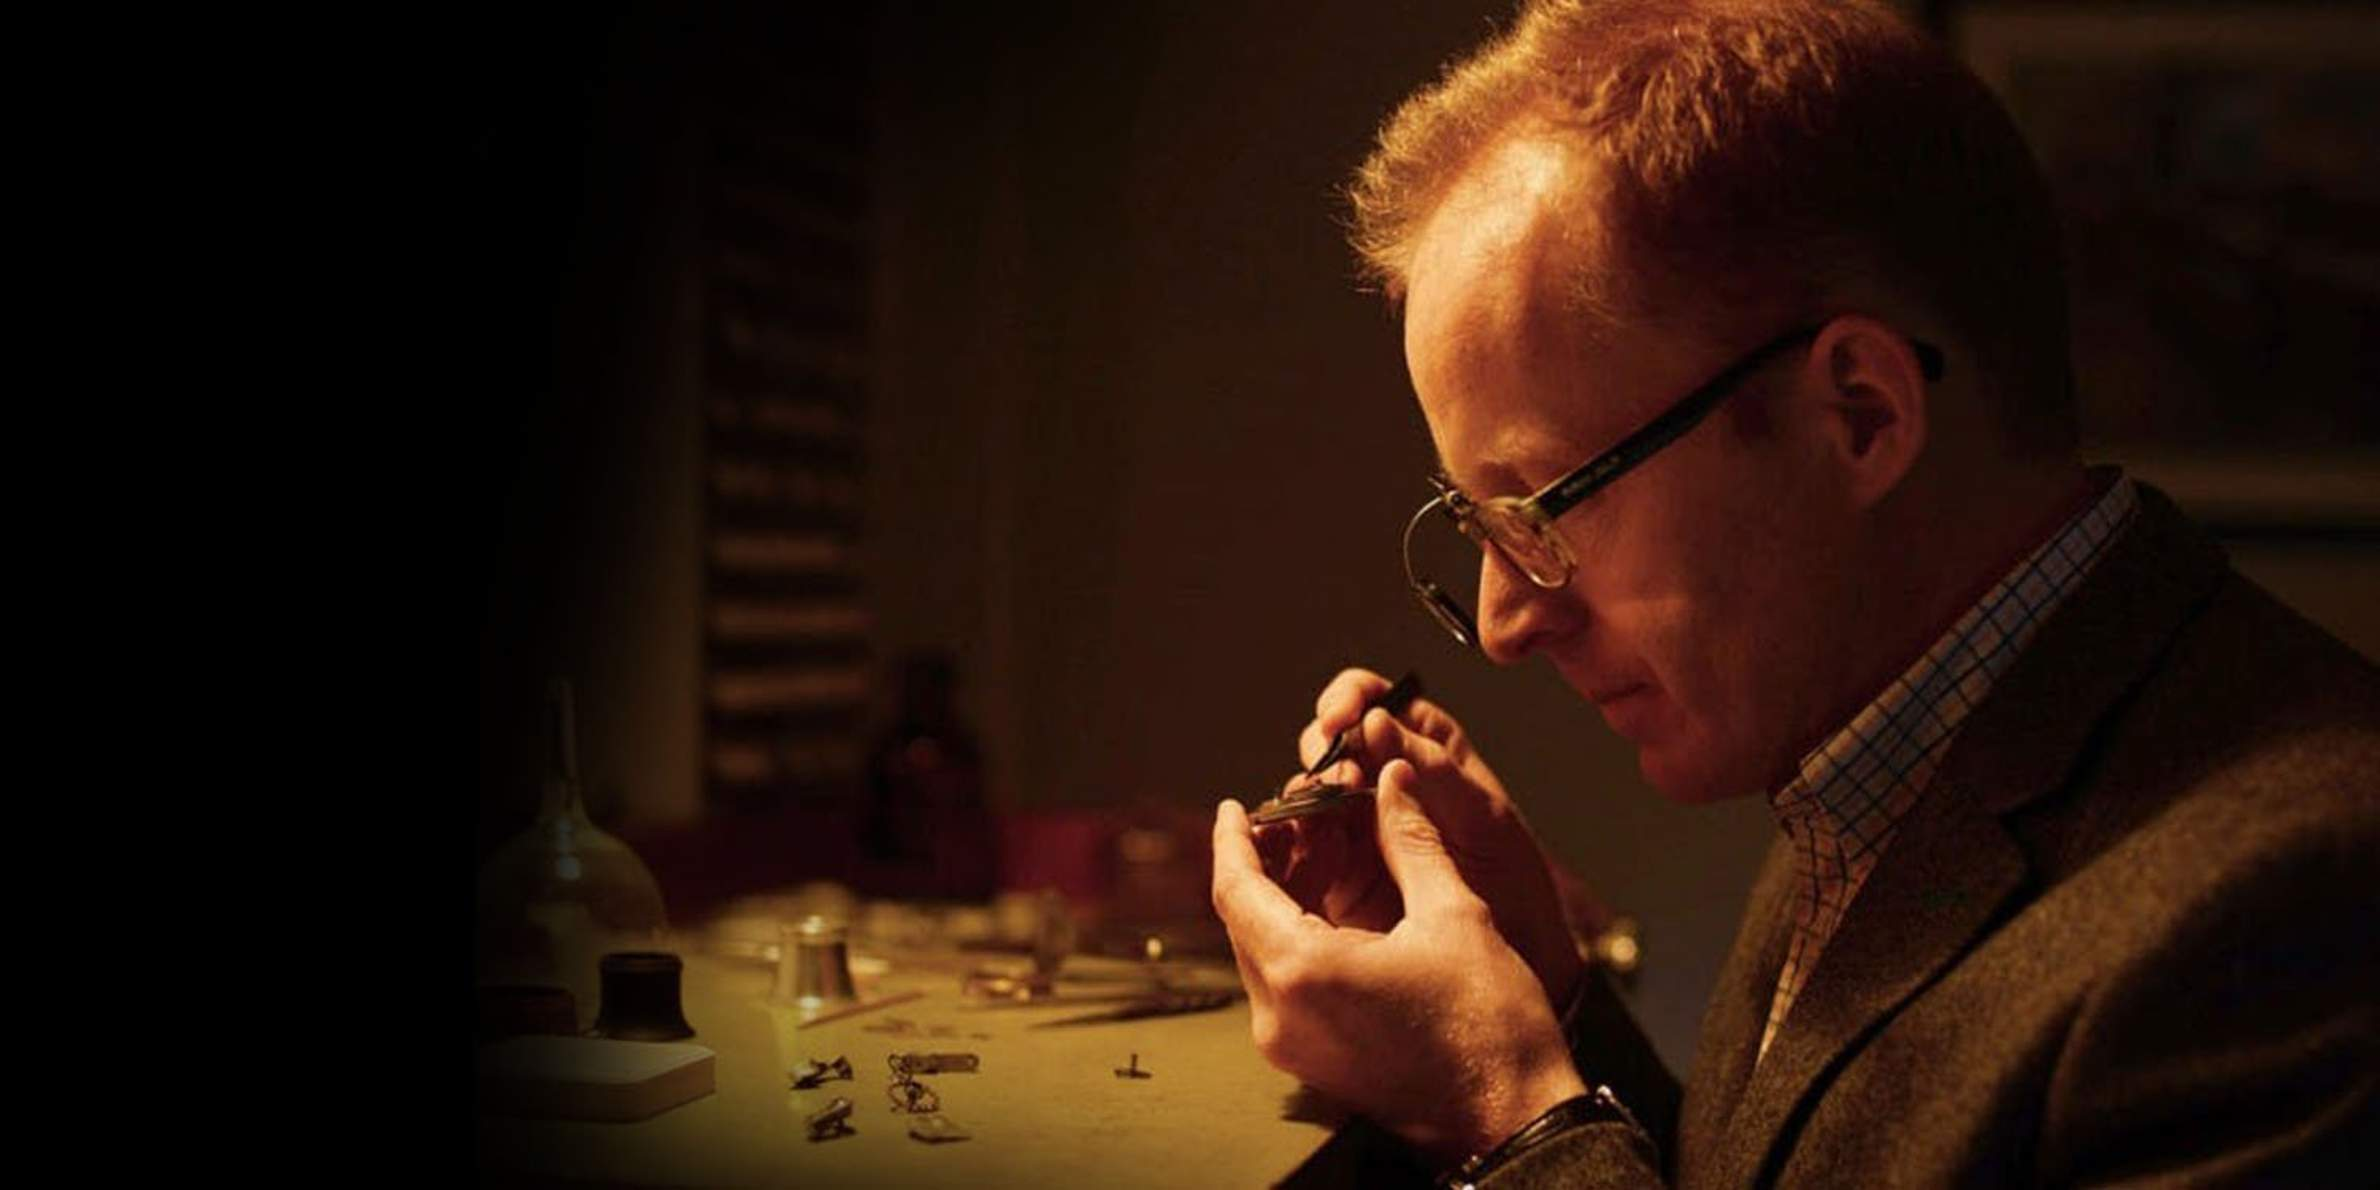 Watchmaker Roger smith